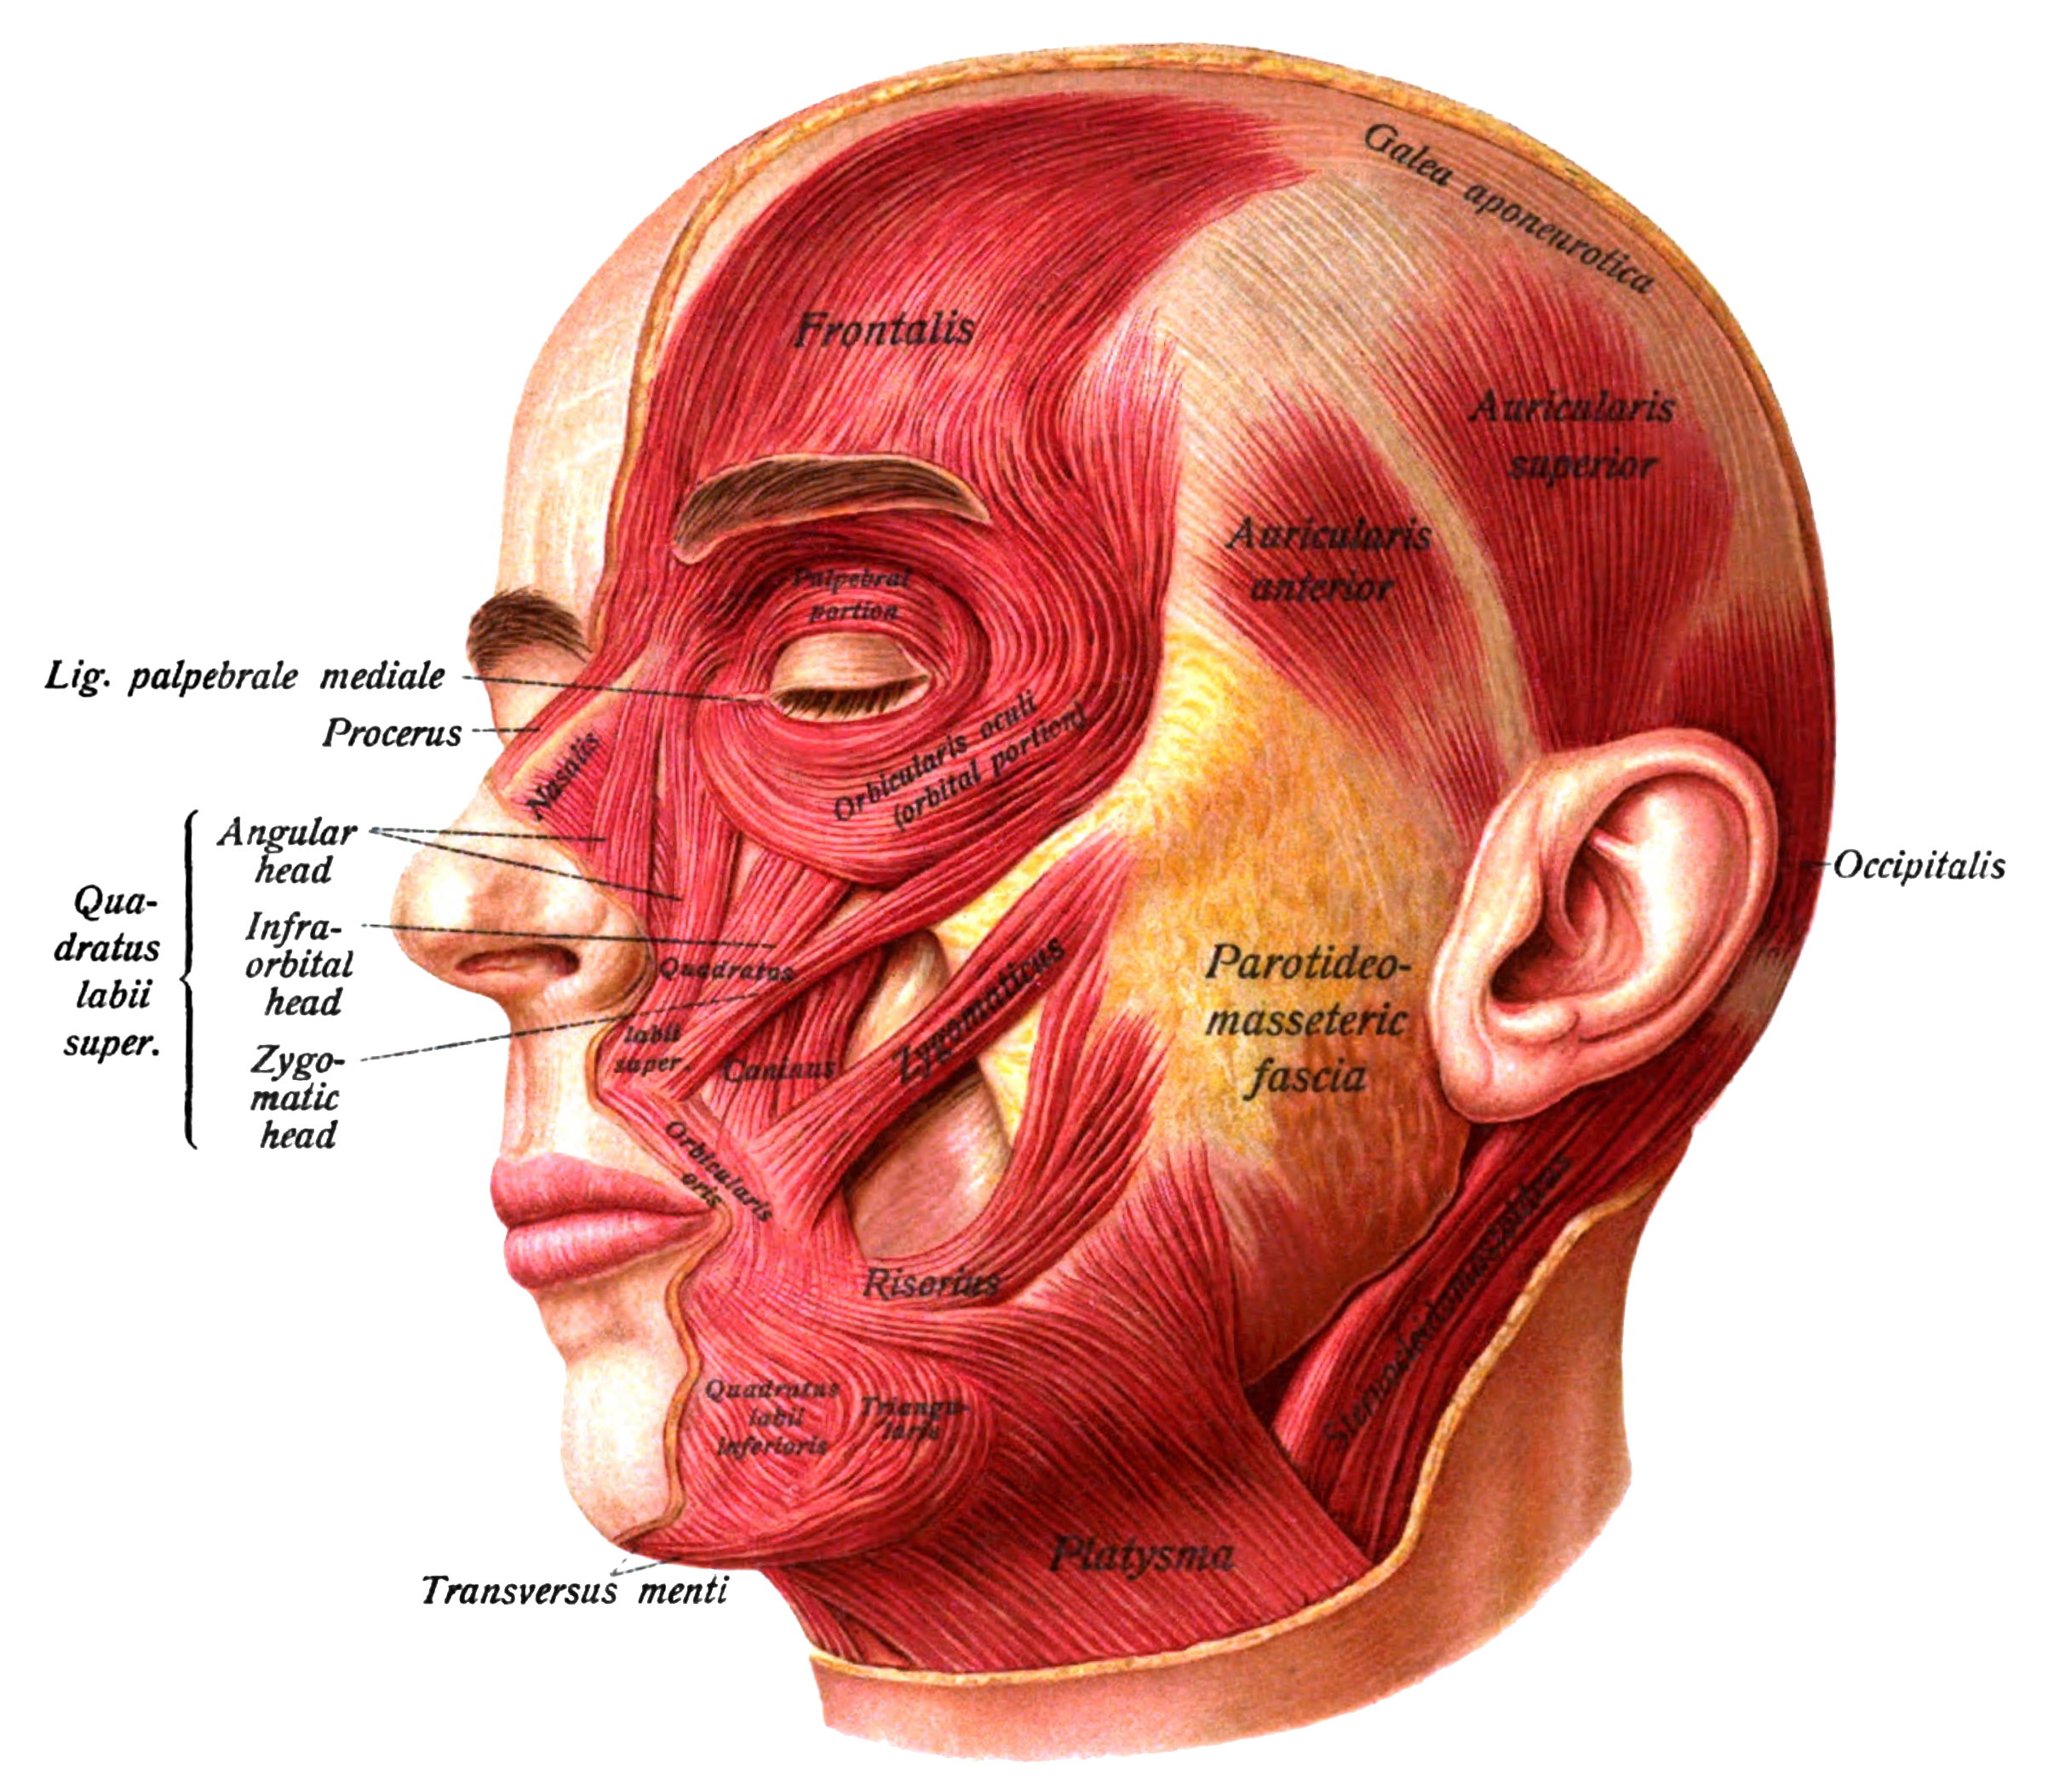 Sobo_1909_260.png (2412×2104) | Anatomy - Face | Pinterest